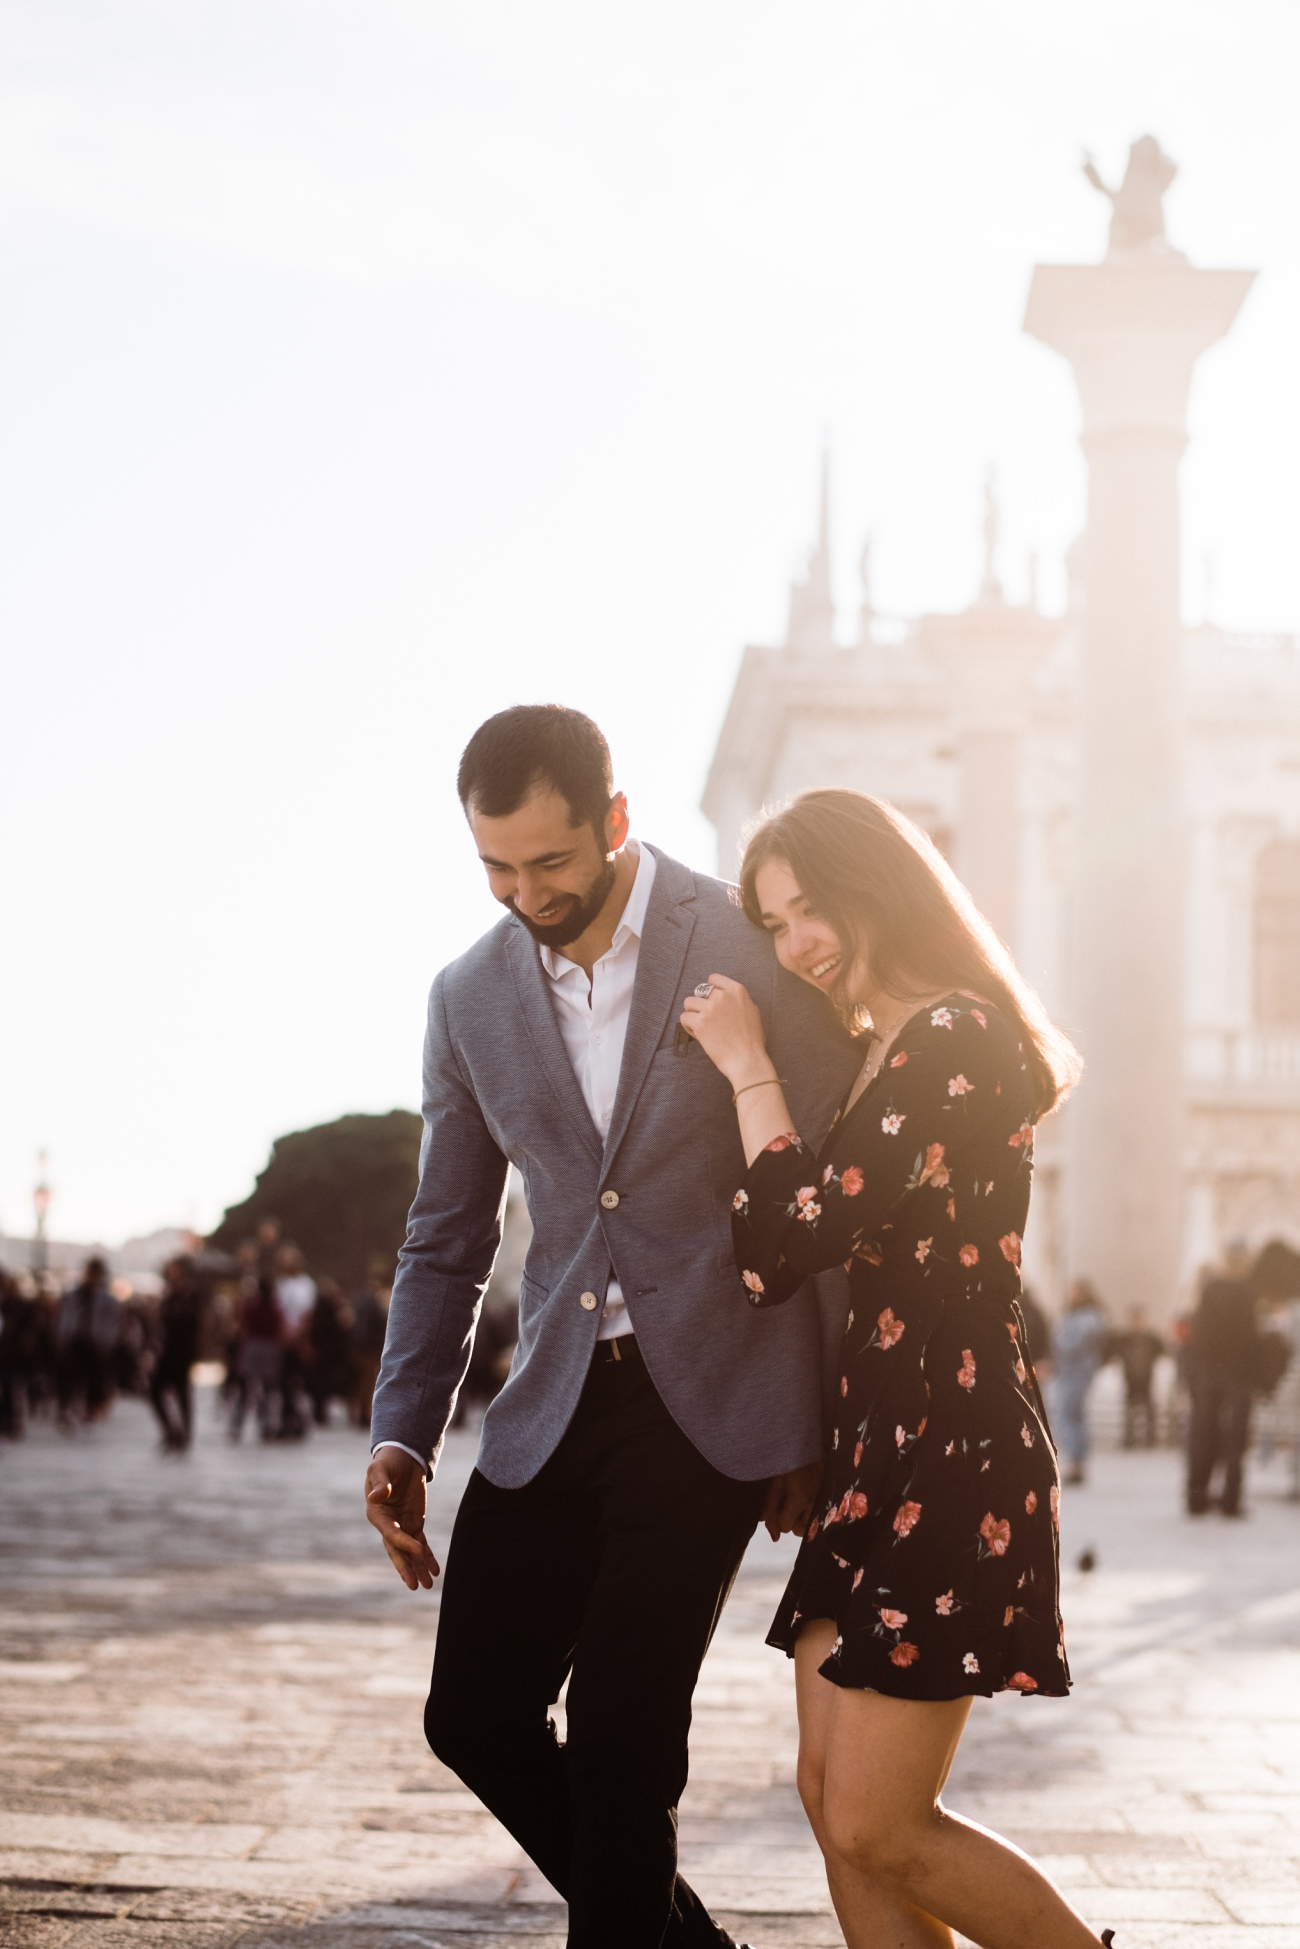 Wedding Proposal in Venice